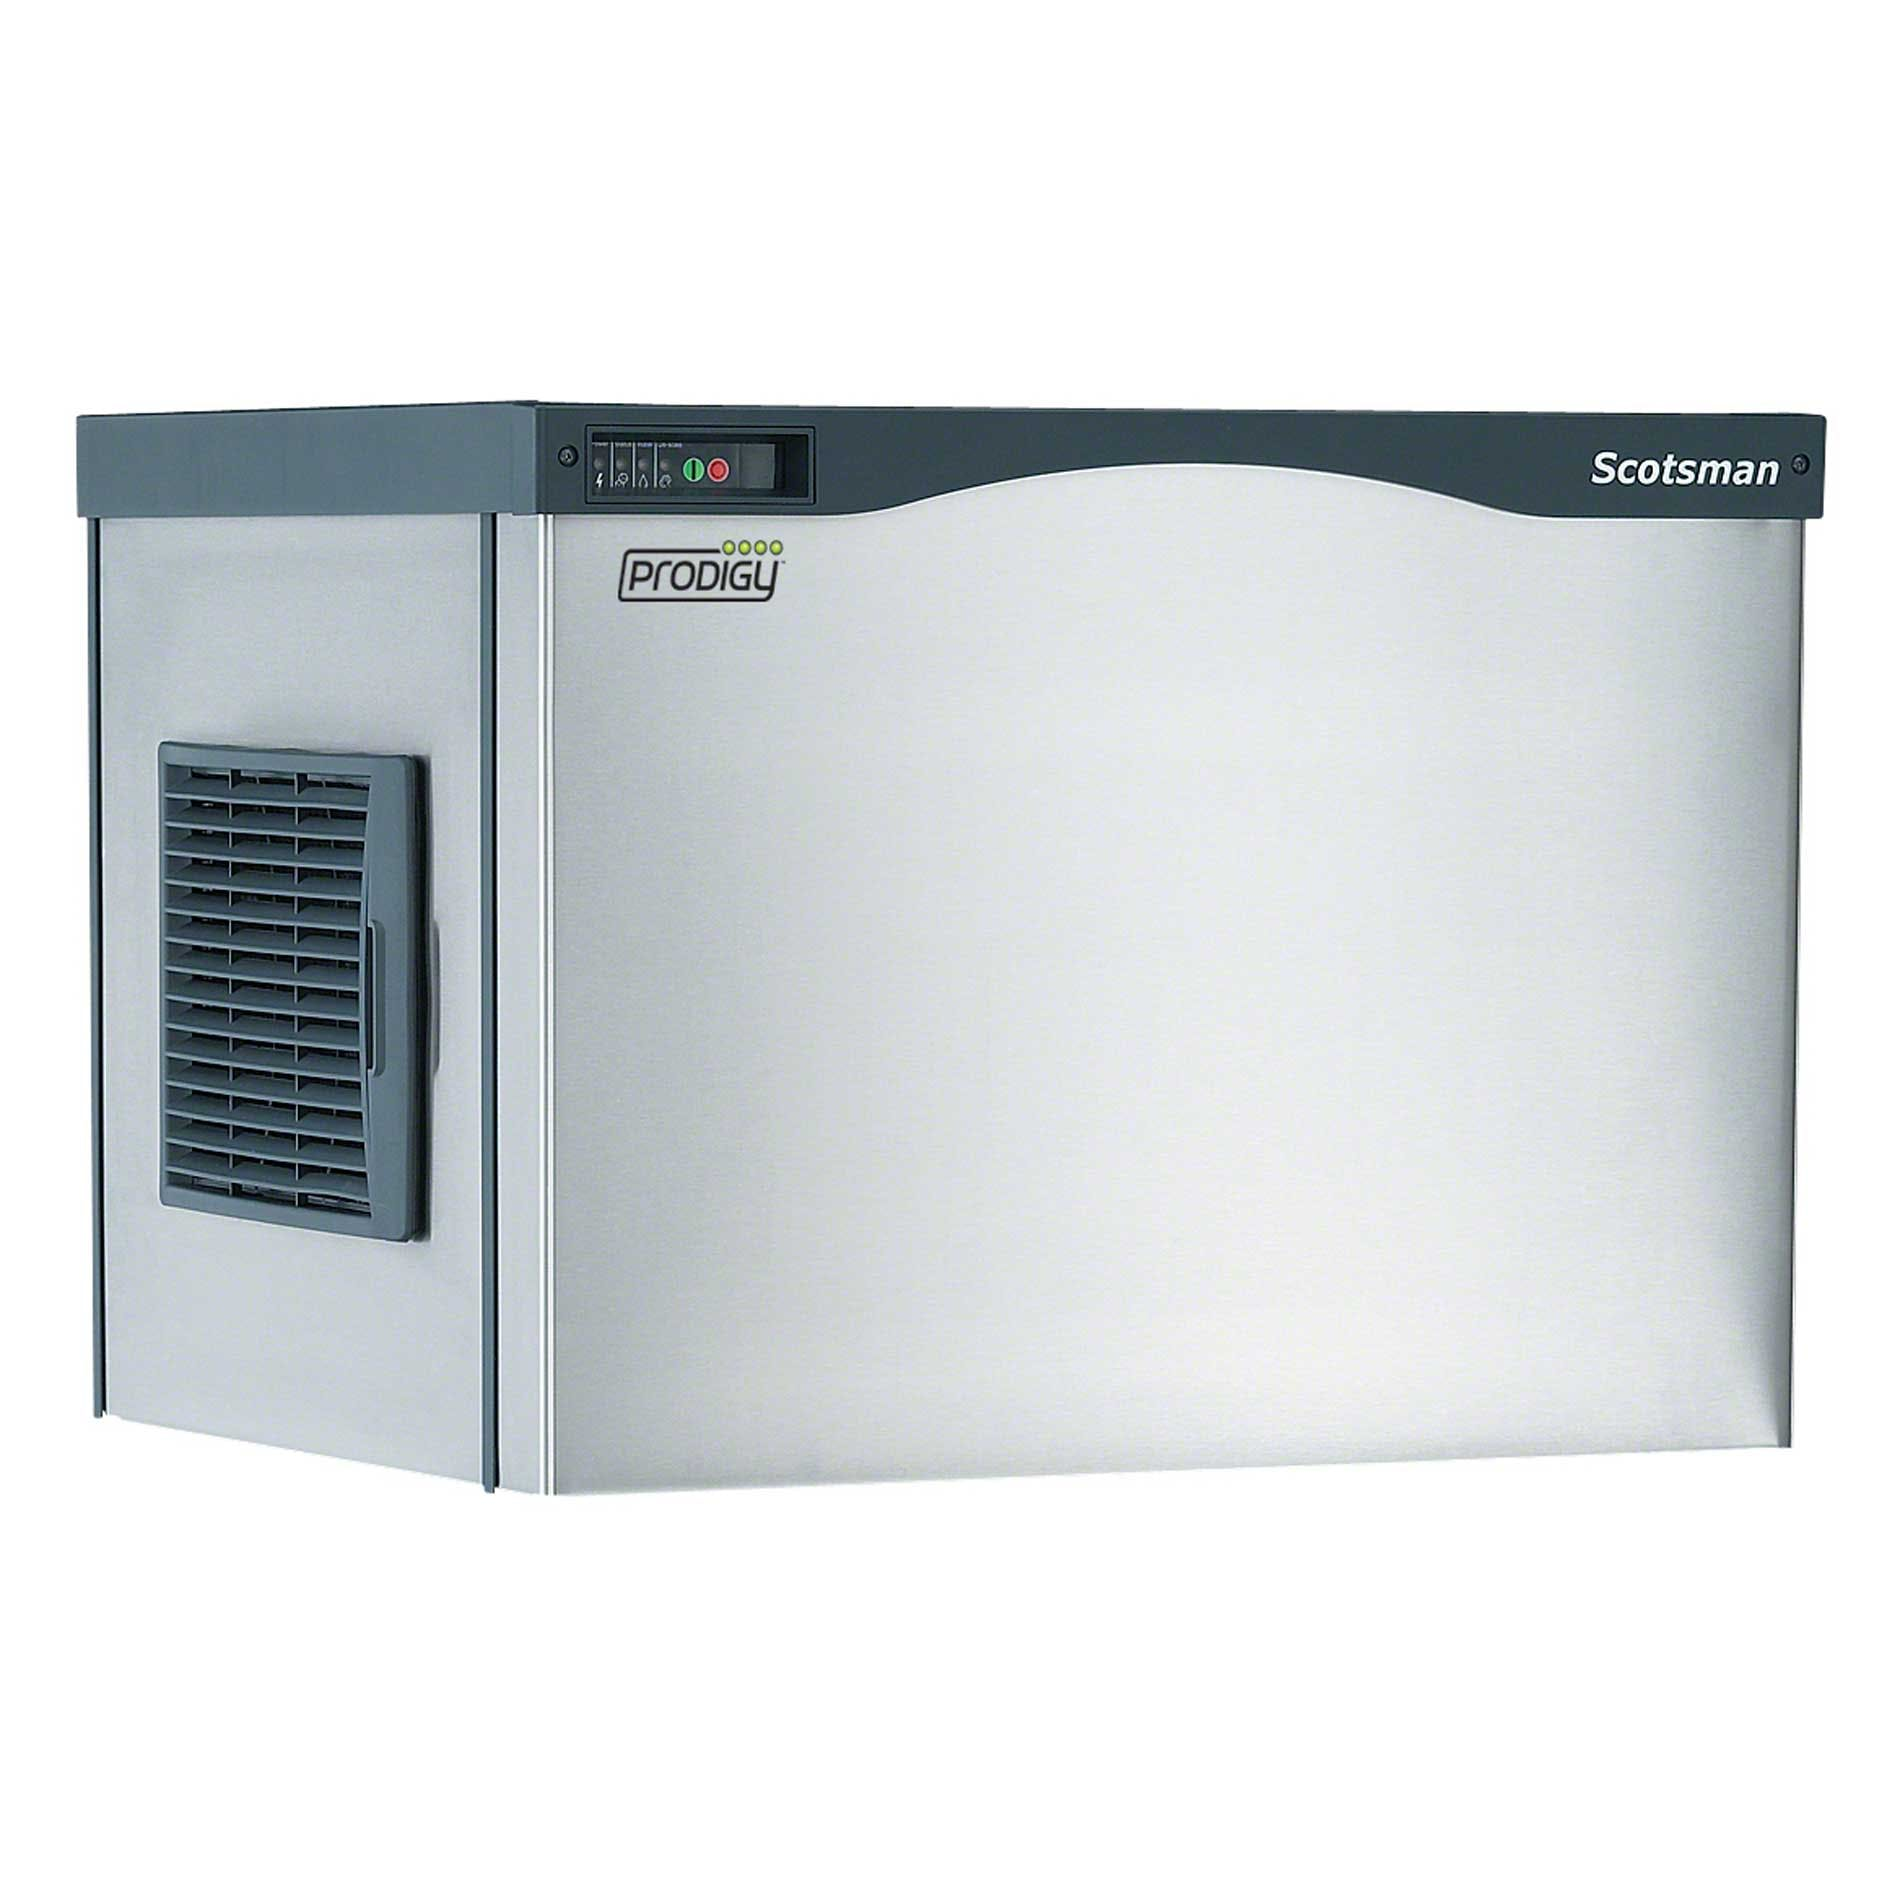 Scotsman - C0530MA-32 500 lb Modular Cube Ice Machine - Prodigy® Series Ice machine sold by Food Service Warehouse